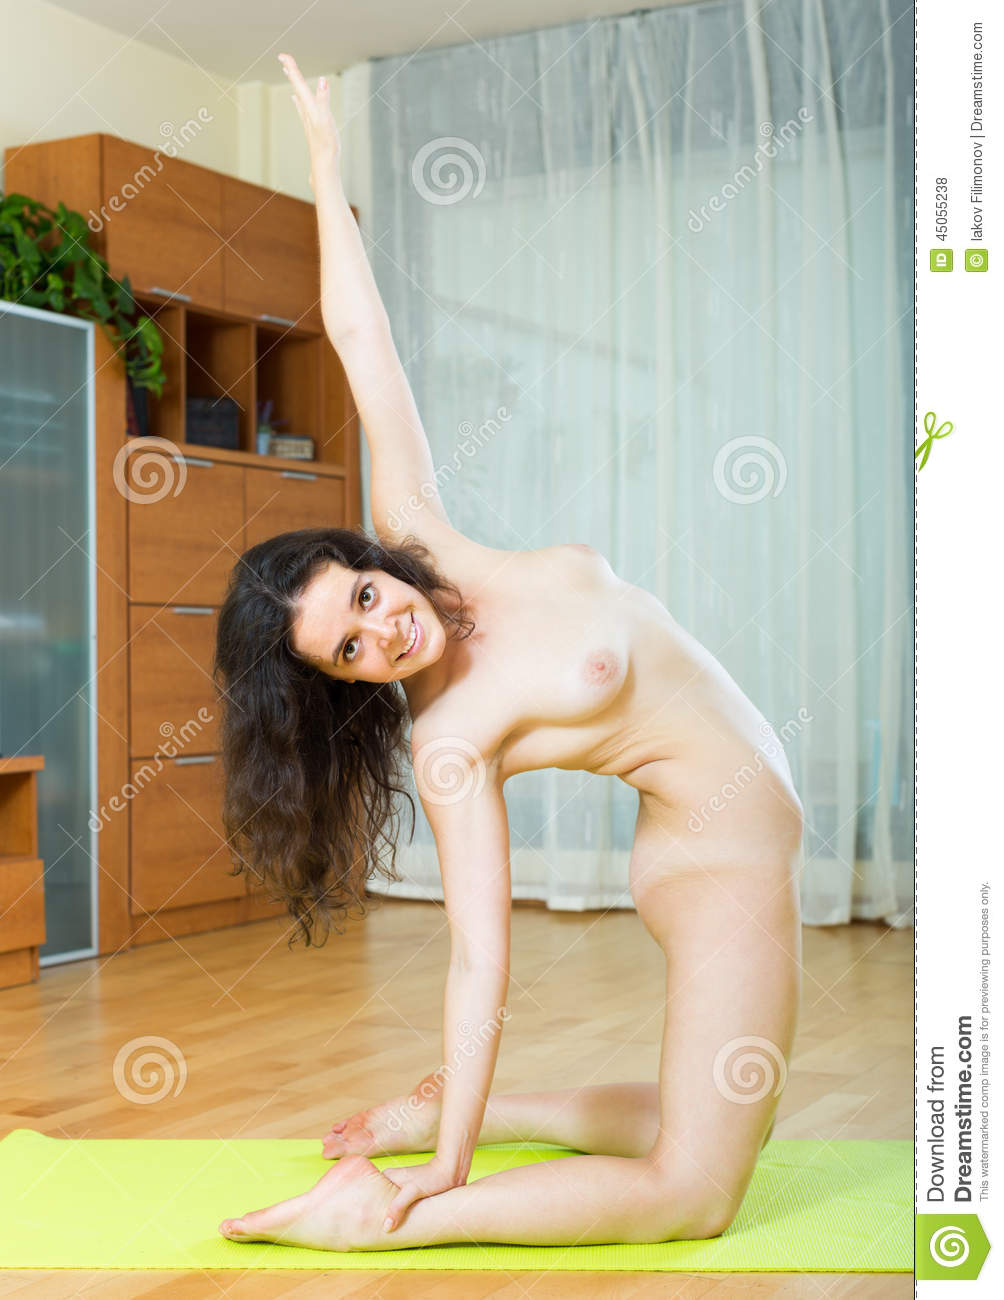 Share your Nude girl doing yoga something